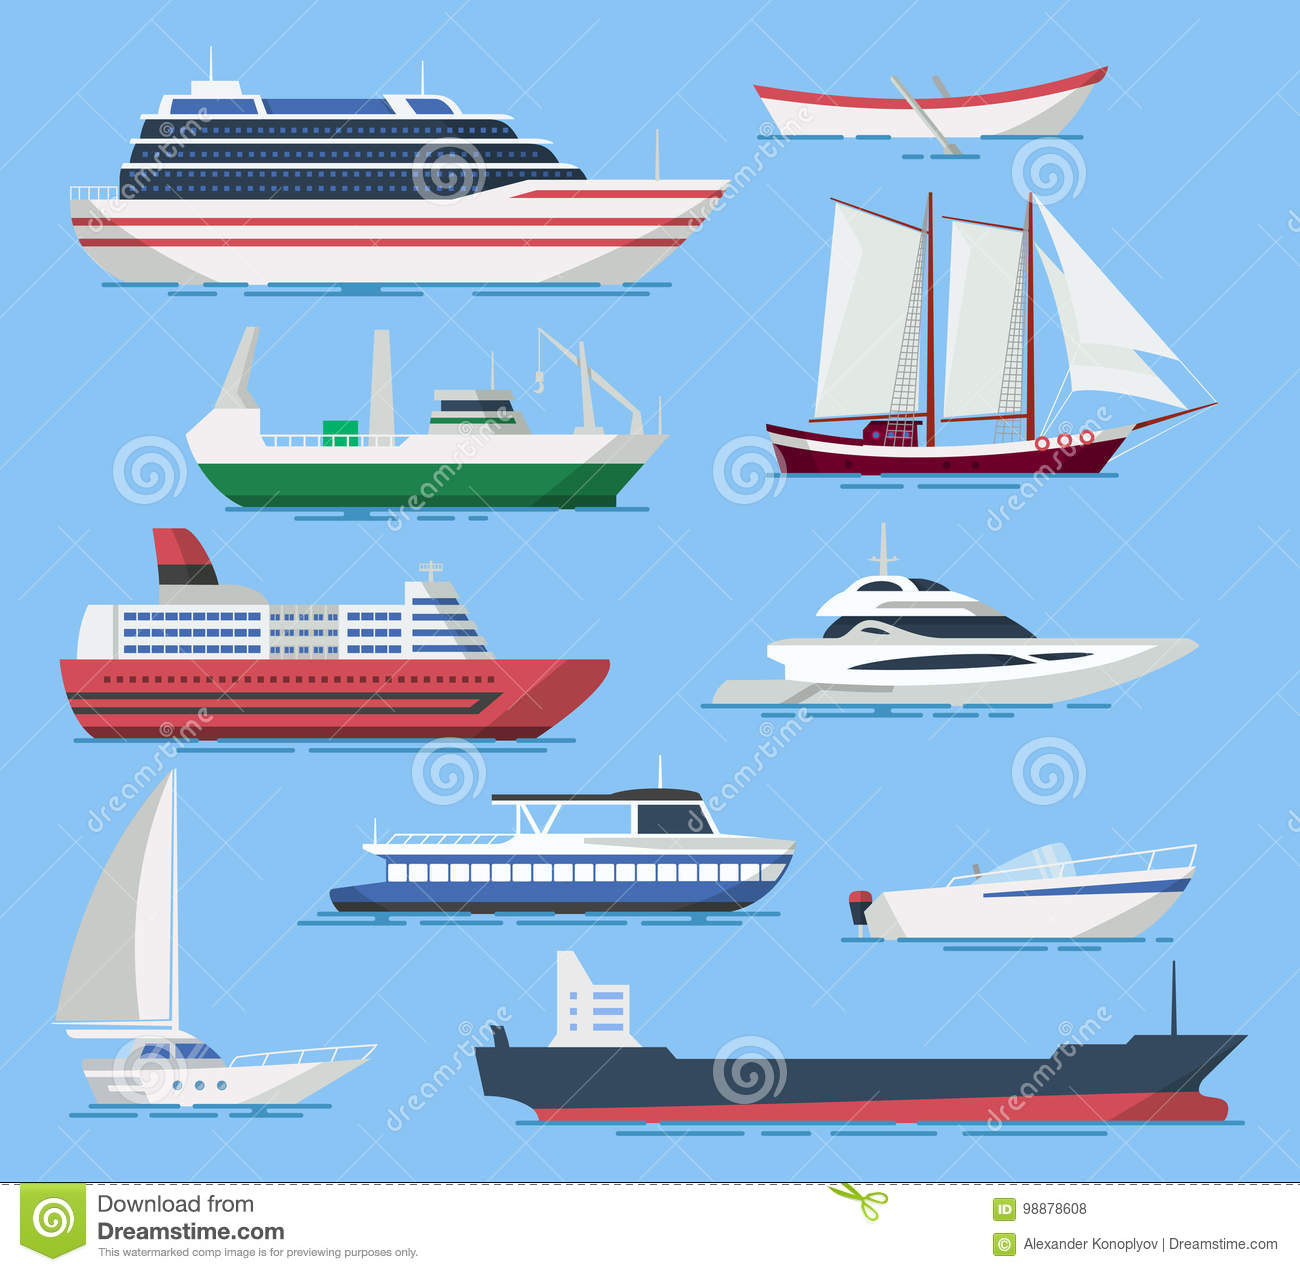 Ships and boats vector set in a flat style.